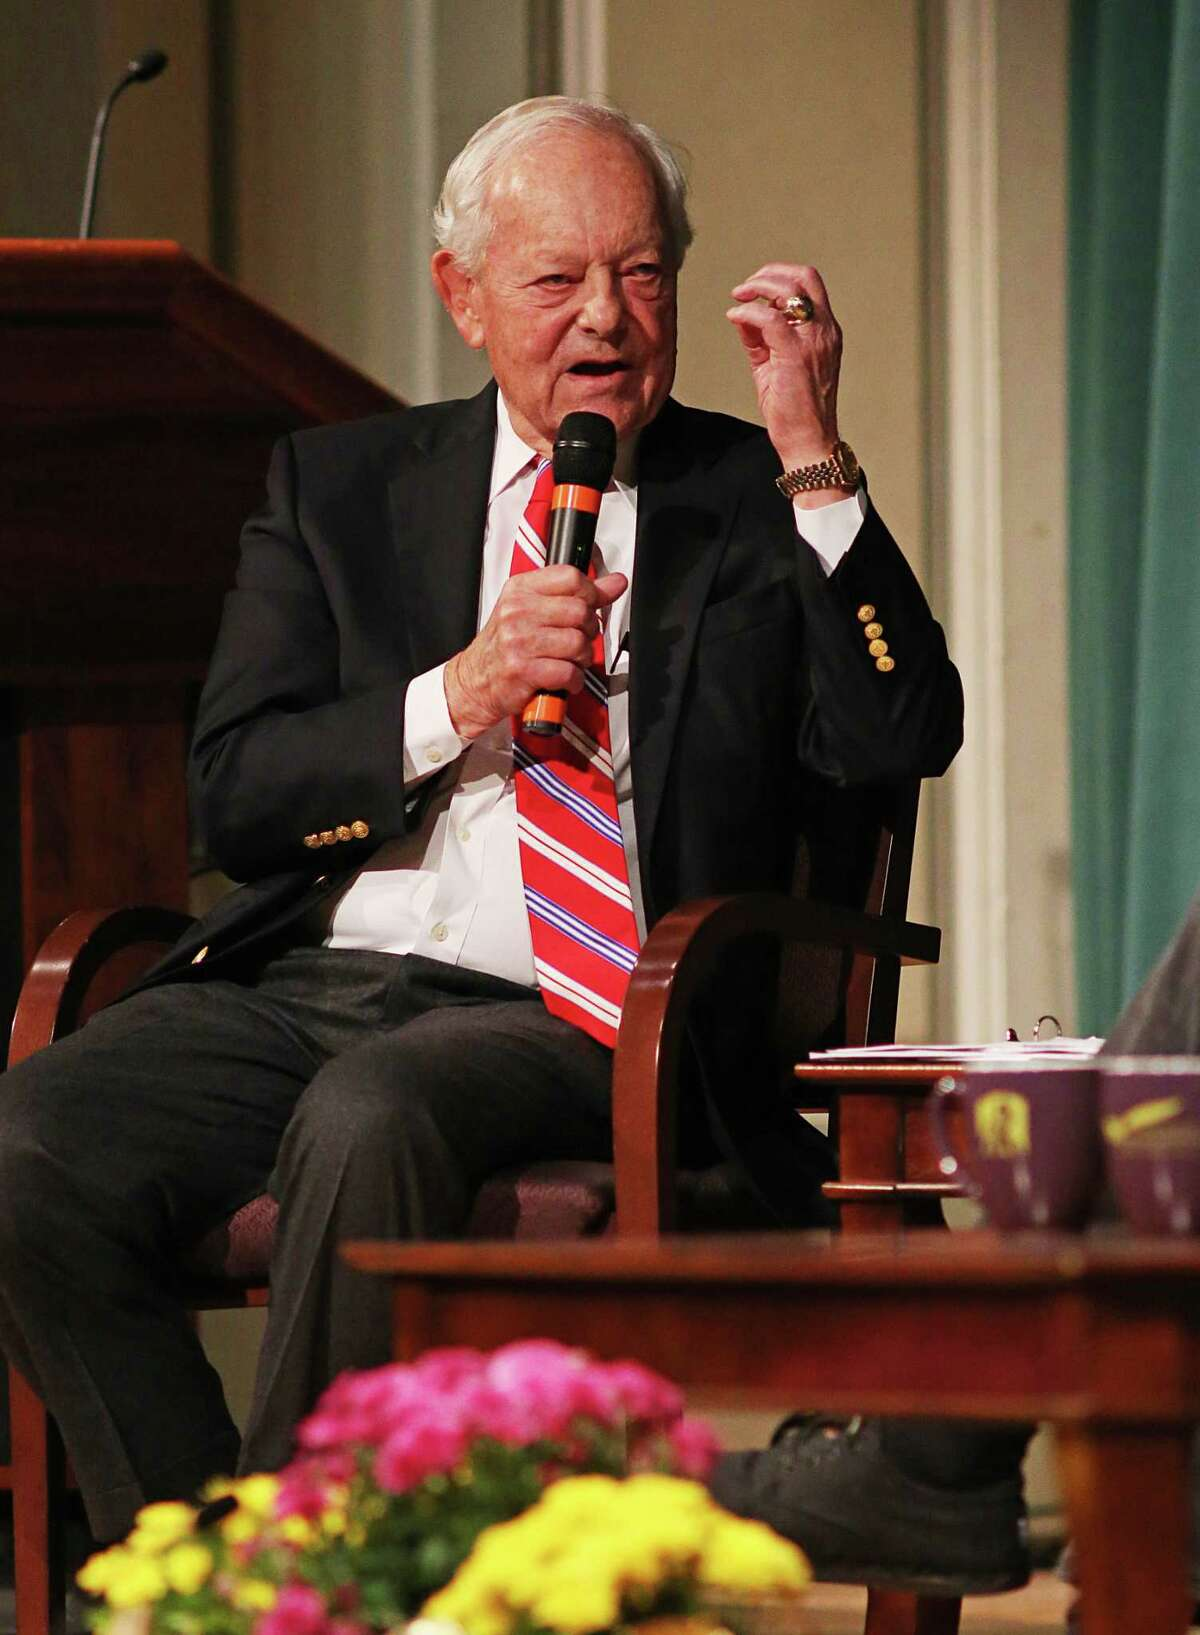 Bob Schieffer, a former anchor of ??CBS Evening News?? and ??Face the Nation,?? moderates a panel for ?Media in the Age of New Technology: Fake News, Information Overload, & Media Literacy? at UAlbany's Page Hall on Friday, Oct. 13, 2017. (Thomas Palmer/Times Union)